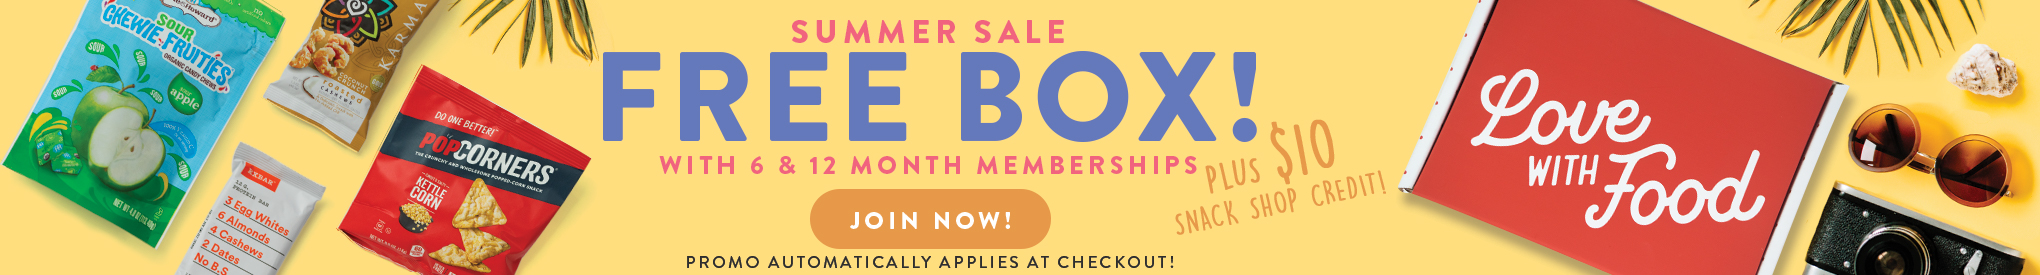 SUMMER SALE Get $10 shopping credit and a free box when you join for 6 or 12 months. PROMO APPLIES AUTOMATICALLY AT CHECKOUT. Hurry! Offer ends 7/7/19